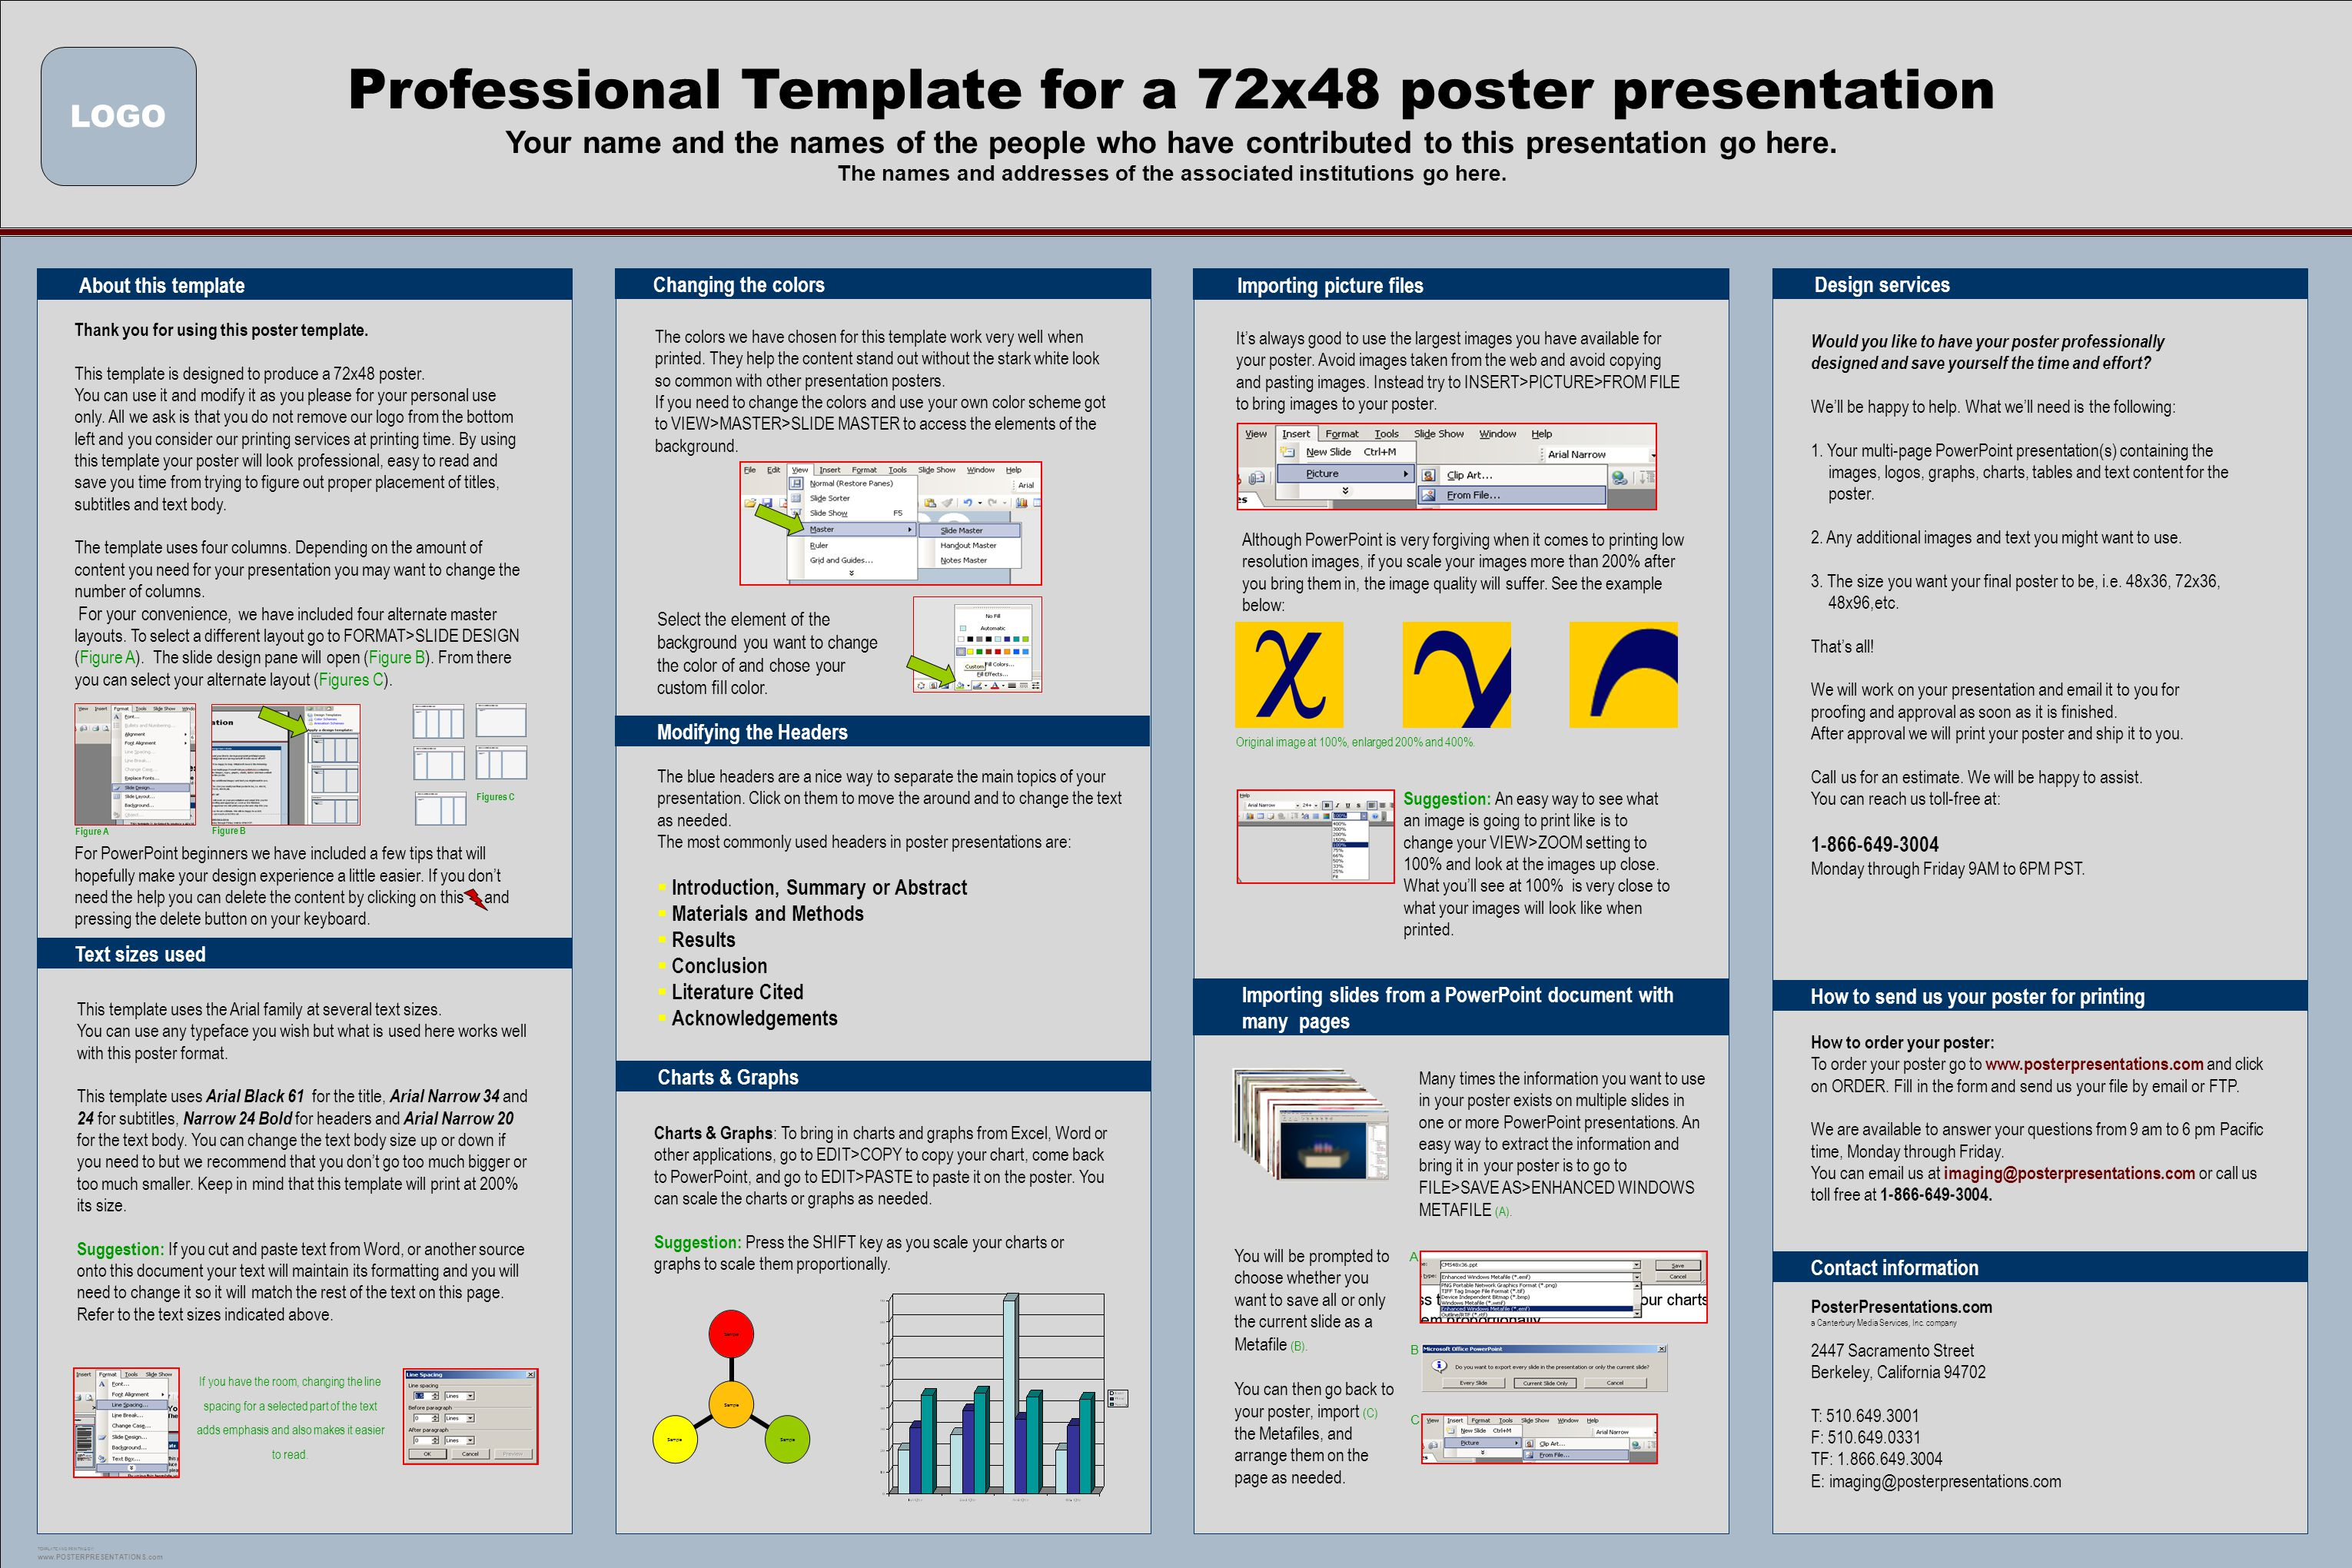 professional template for a 72x48 poster presentation - ppt download, Powerpoint templates